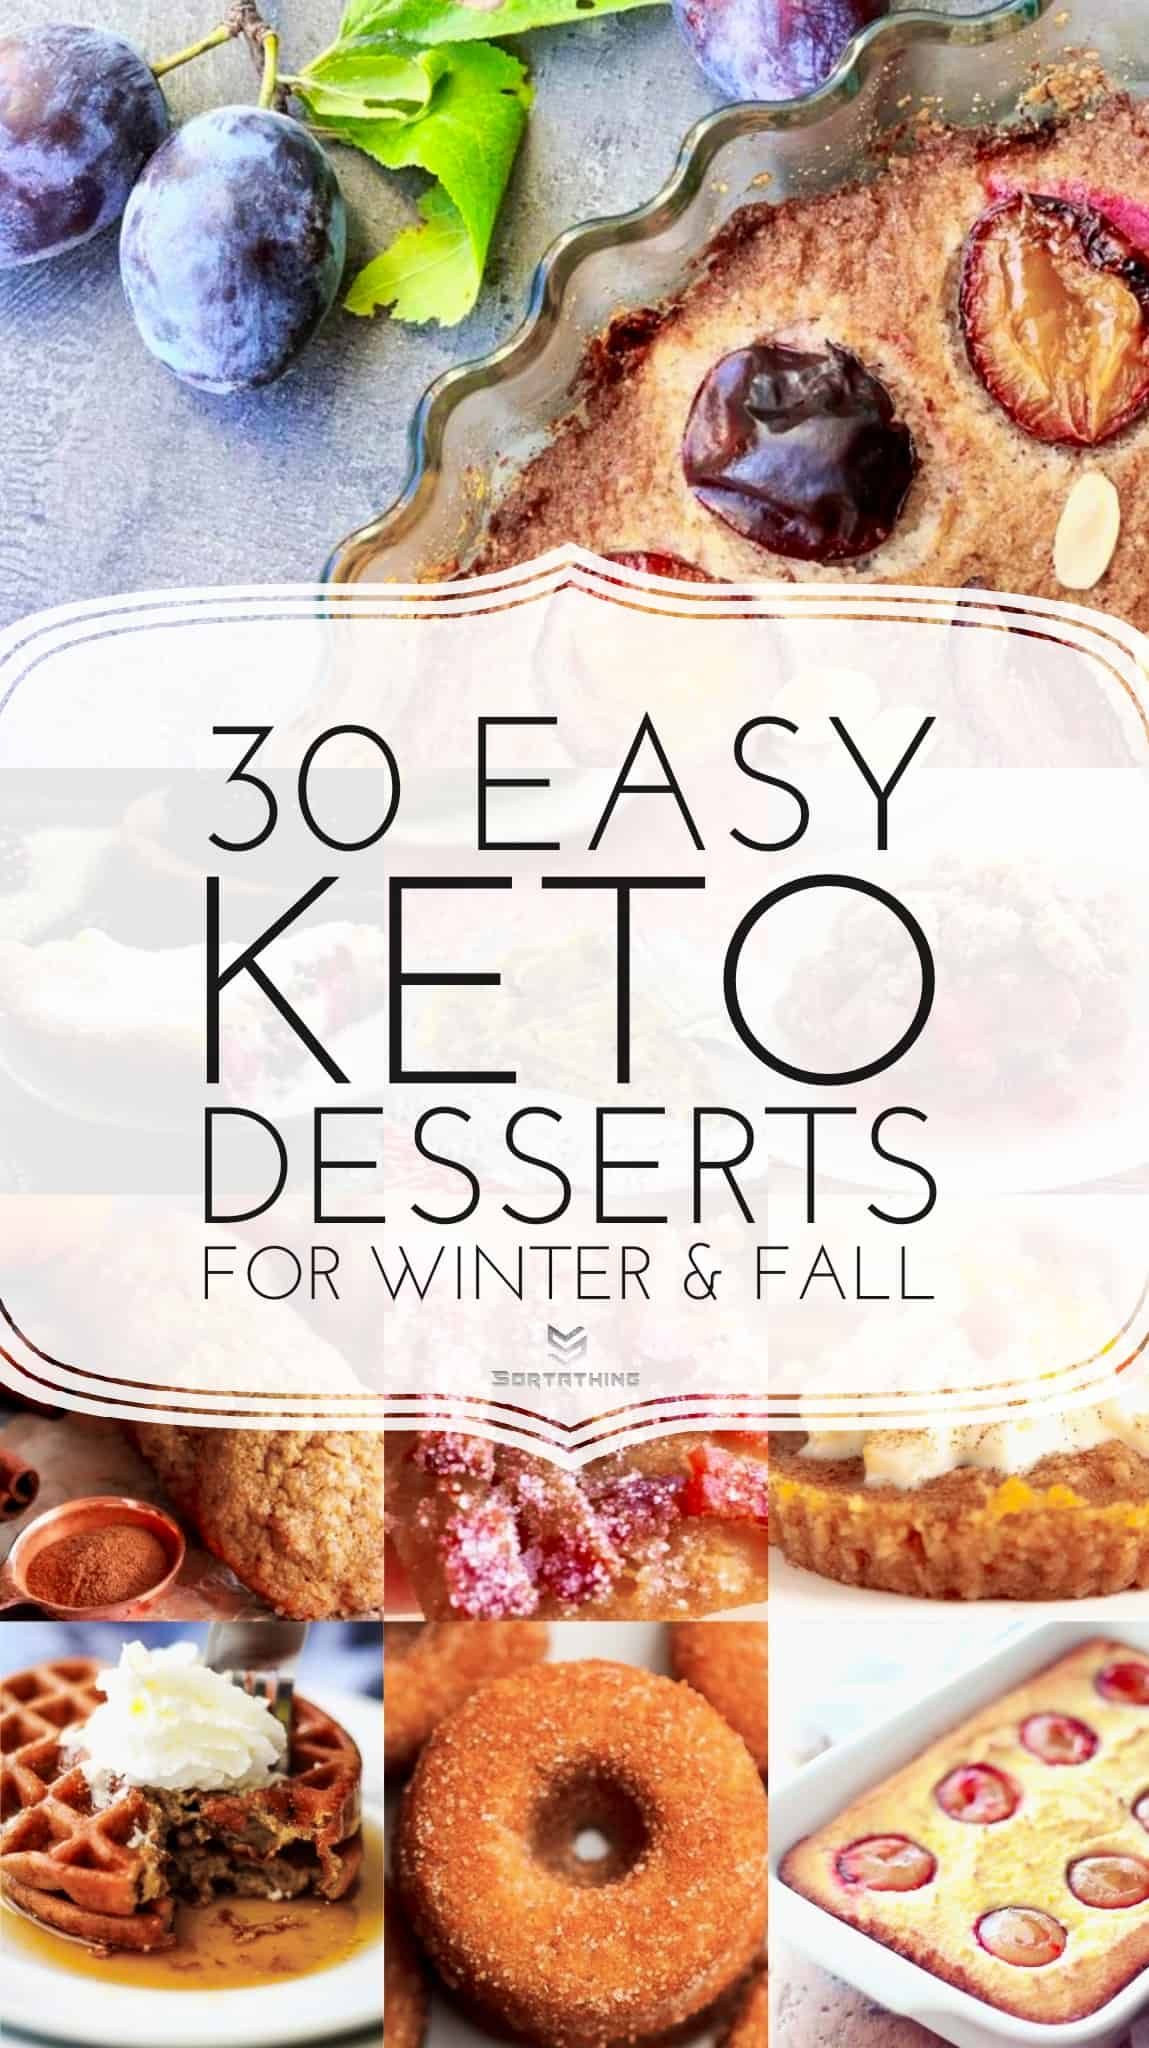 30 Easy Keto Dessert Recipes for Fall and Winter 2019